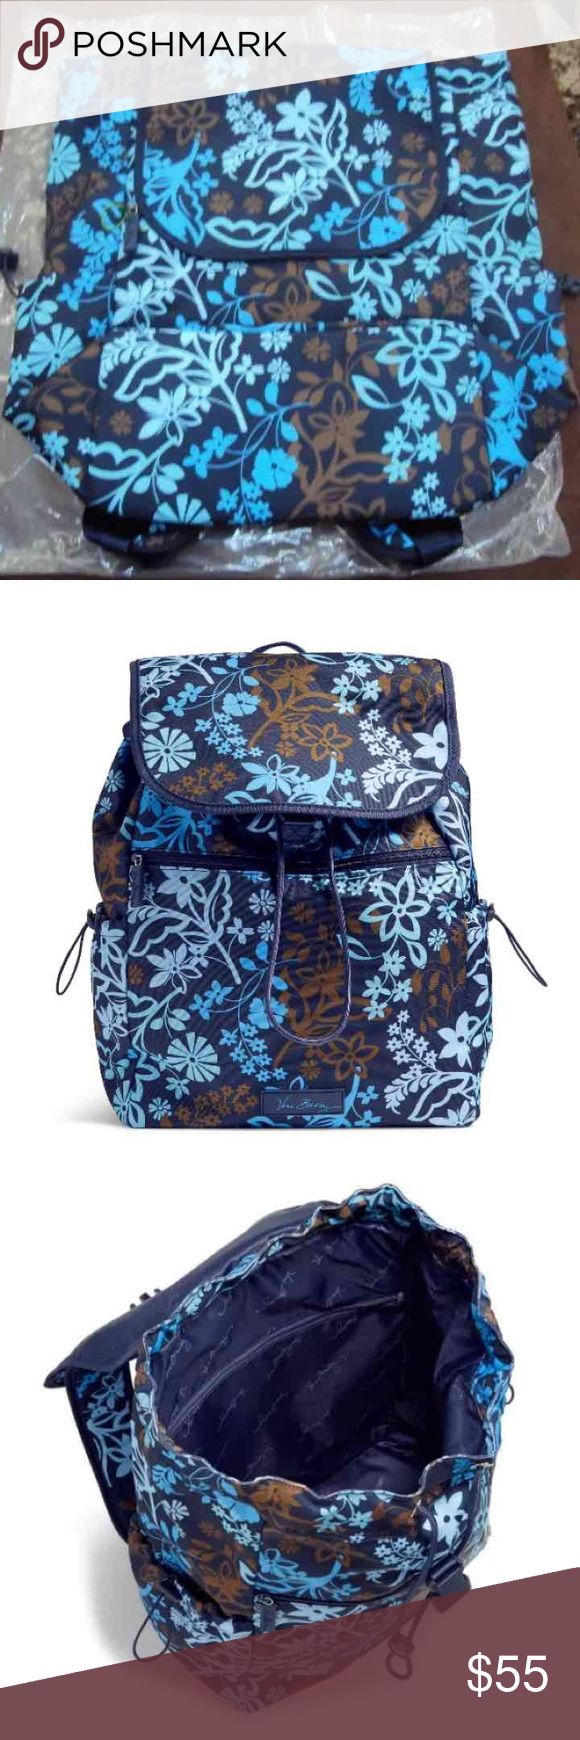 "Vera Bradley Lighten Up BackPack Vera Bradley Lighten Up Drawstring Backpack Java Floral This lightweight backpack has an X large main compartment with a drawstring closure along with a top flap with a buckle X-Large Main compartment with a drawstring and buckle closure 2 mesh slip pockets and a full width zip pocket inside the main compartment  Large back zip pocket Side pockets with adjustable drawstrings. Adjustable padded shoulder straps  Padded back panelTop mounted carry handle 12"" W x…"